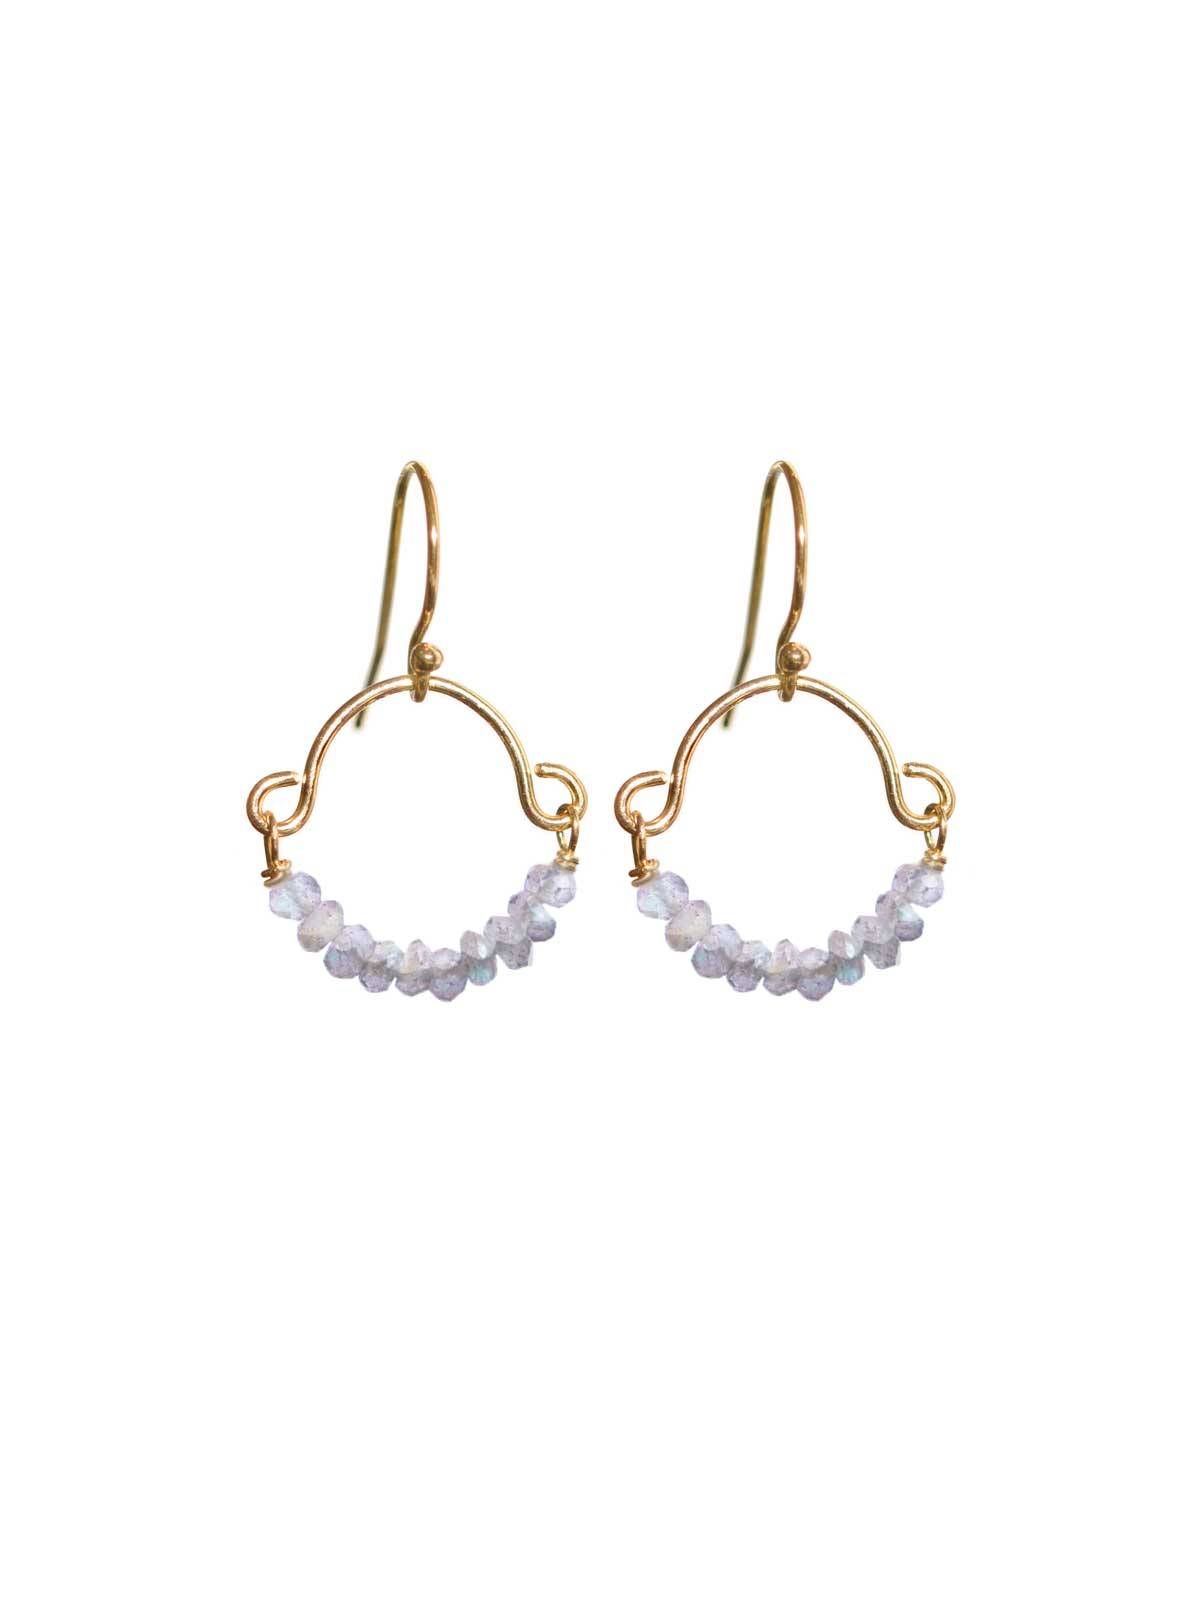 Earrings14K Gold-filled with faceted Moonstone